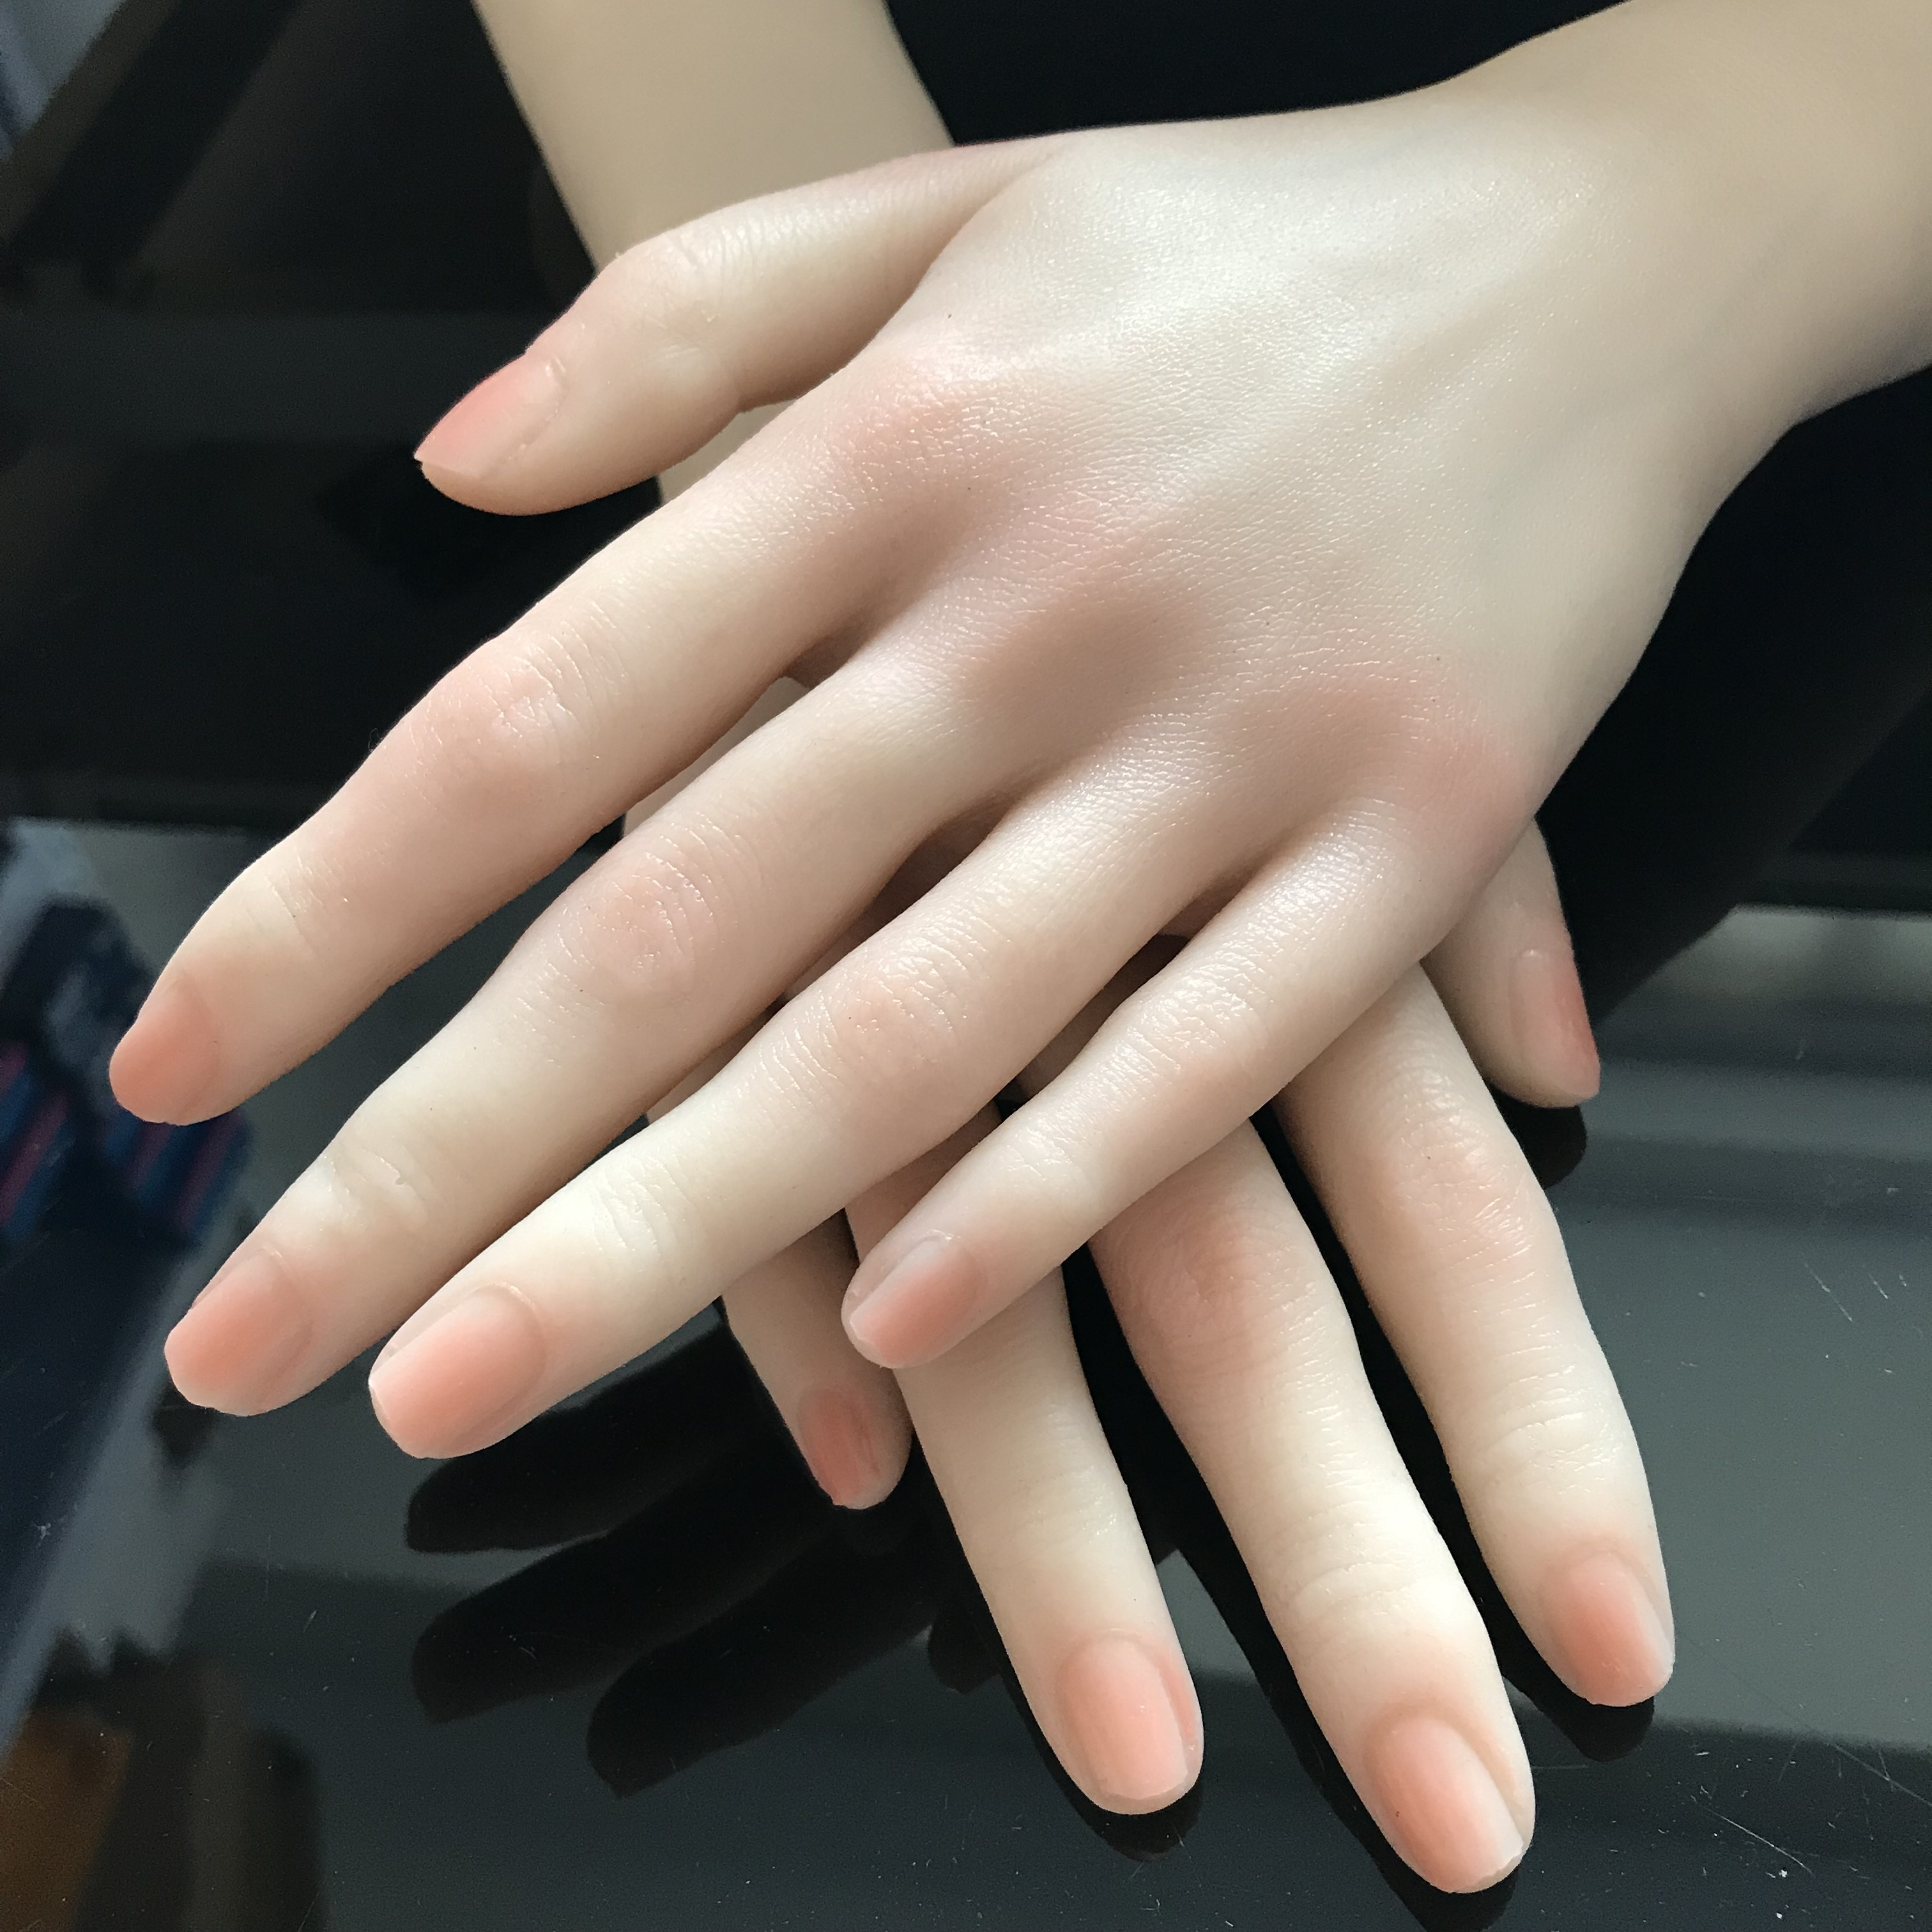 Alibaba.com / 2020 Newest Nail Art Model Female Silicone Practice Hand Mannequin